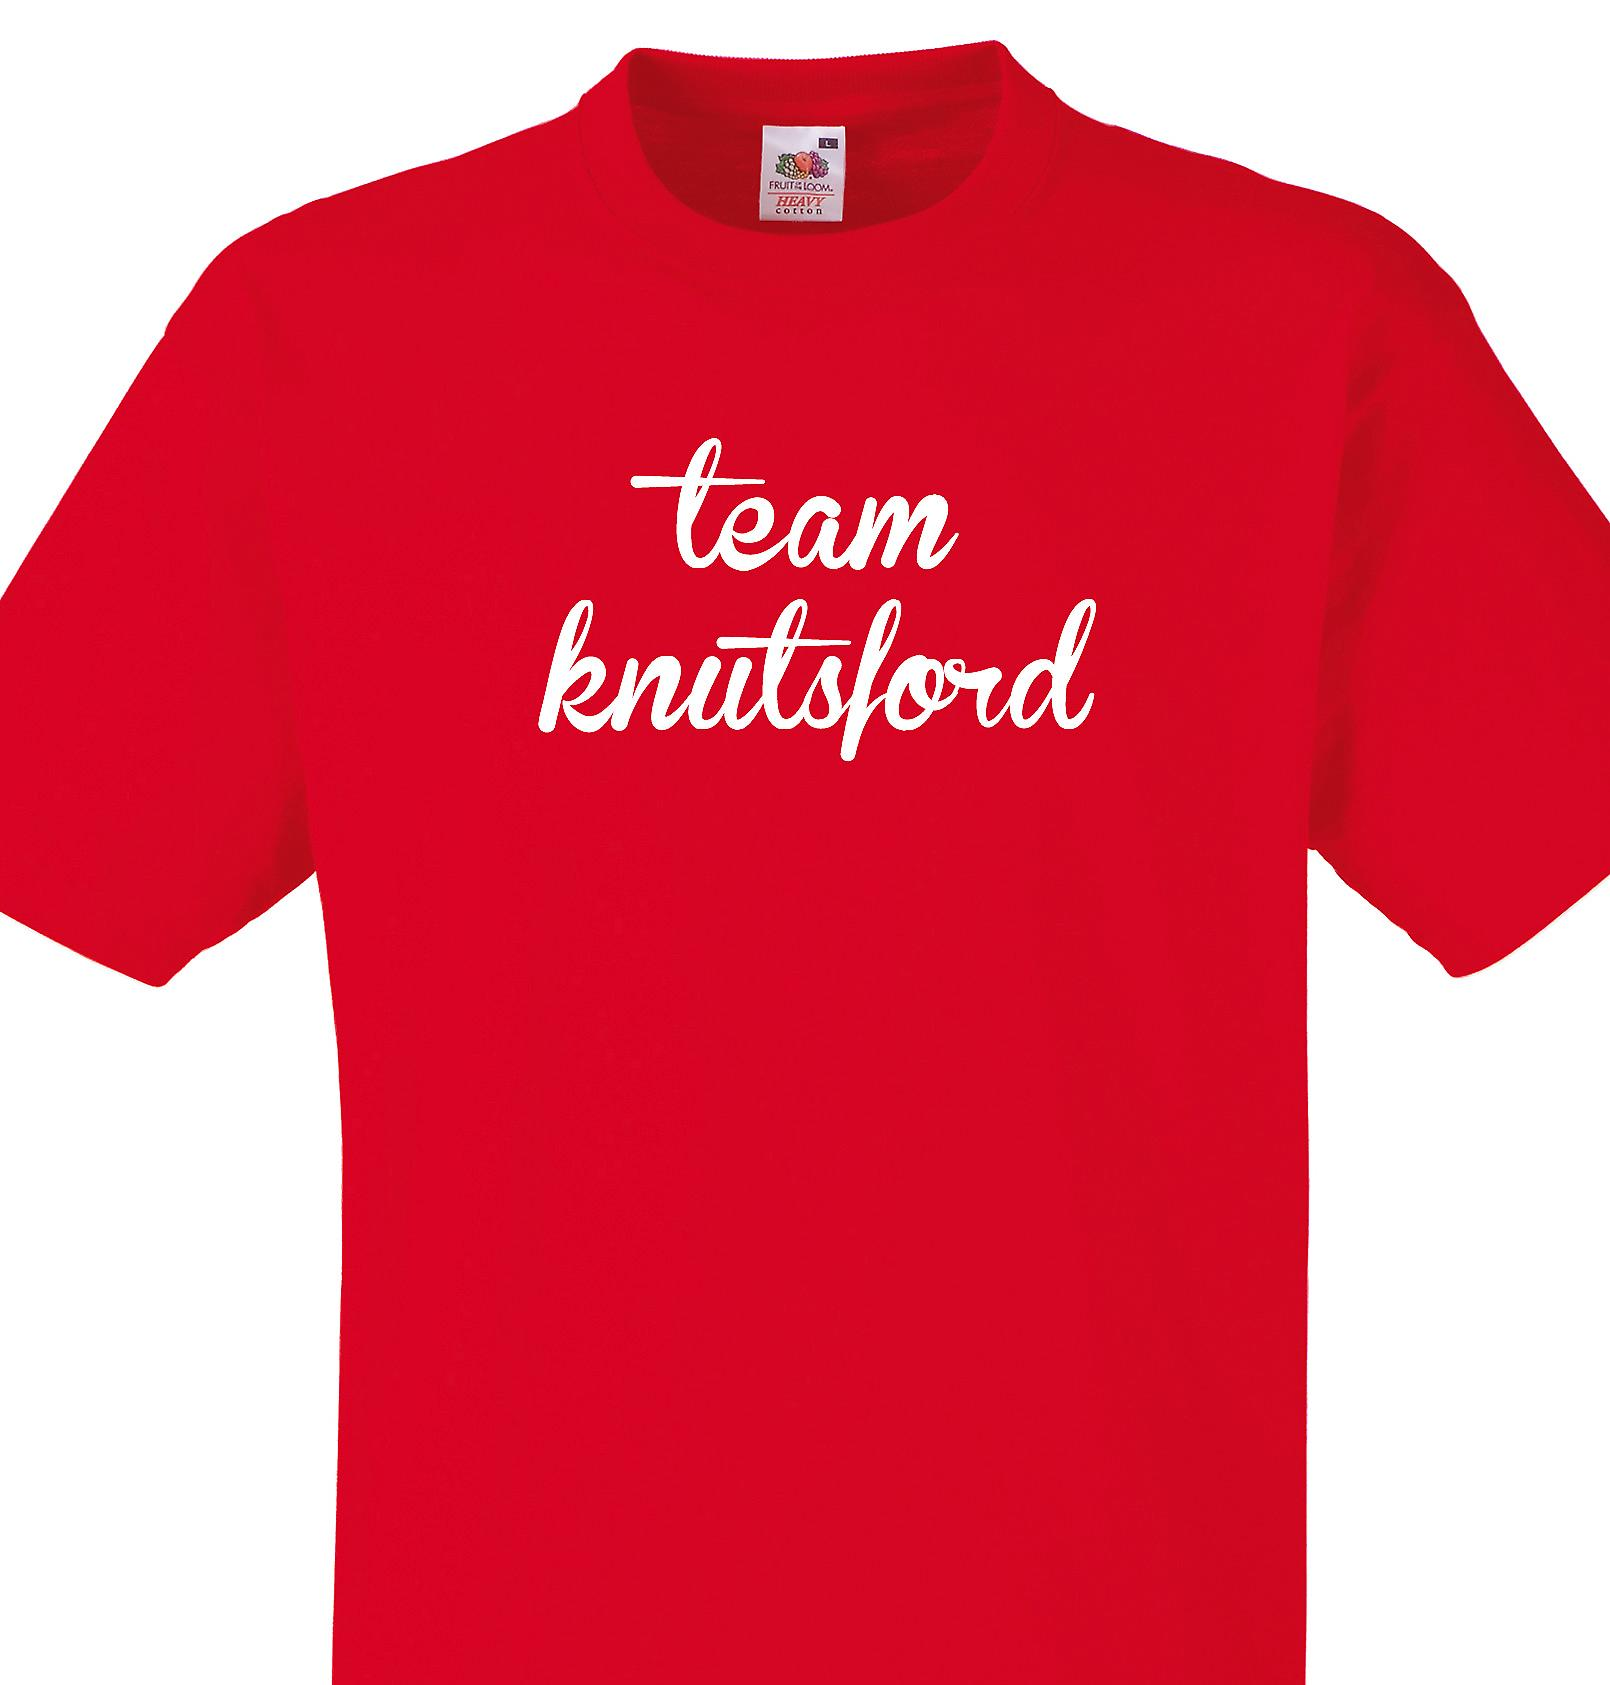 Team Knutsford Red T shirt